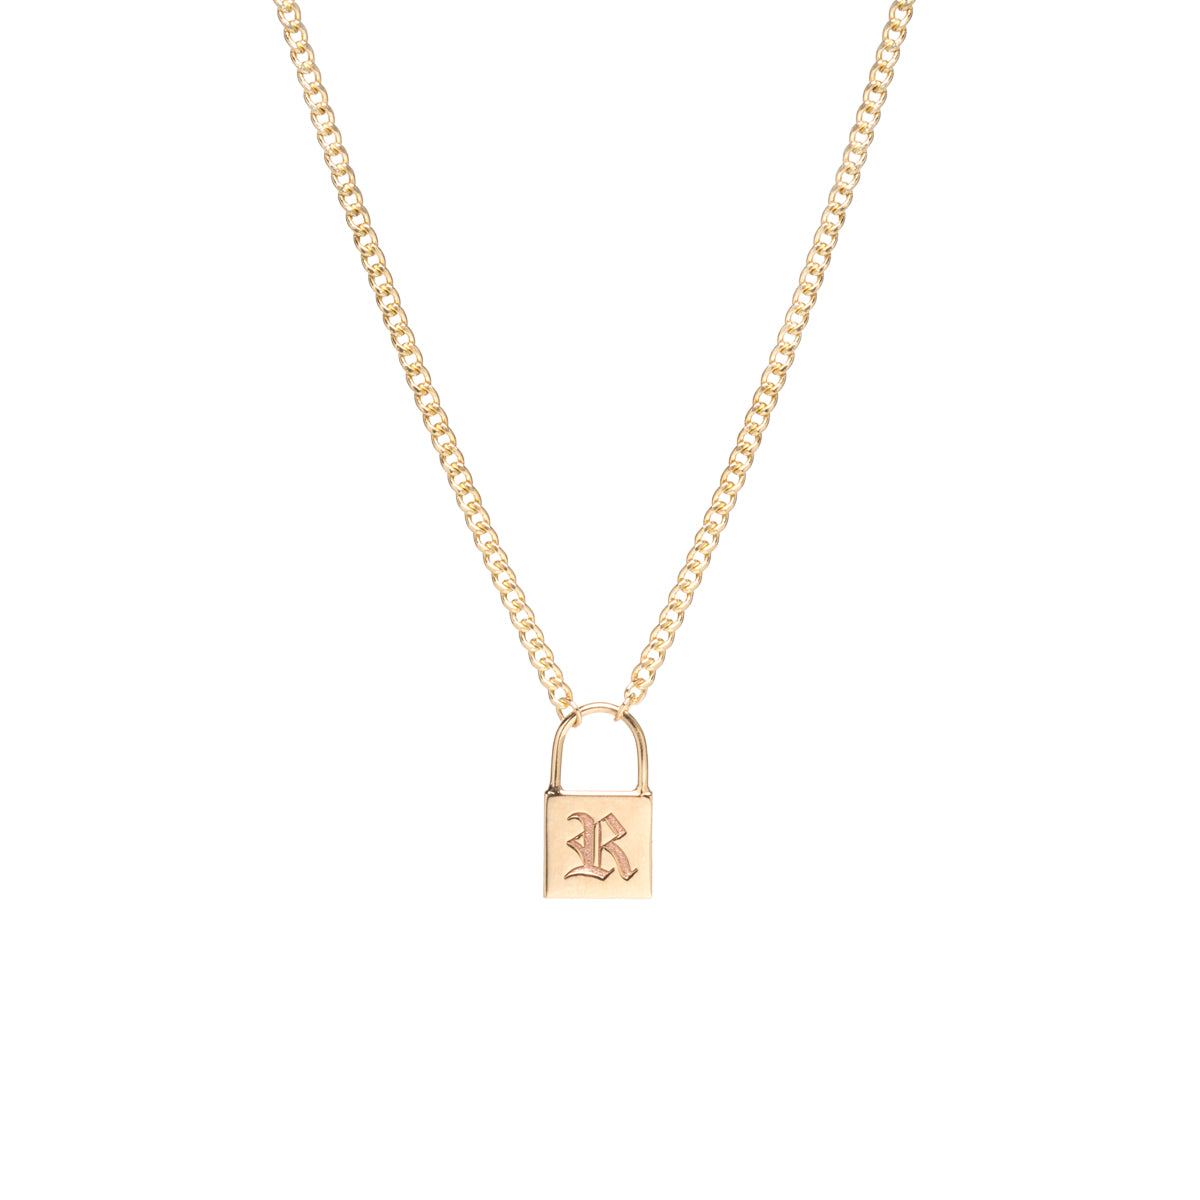 14k small padlock necklace with old English initial